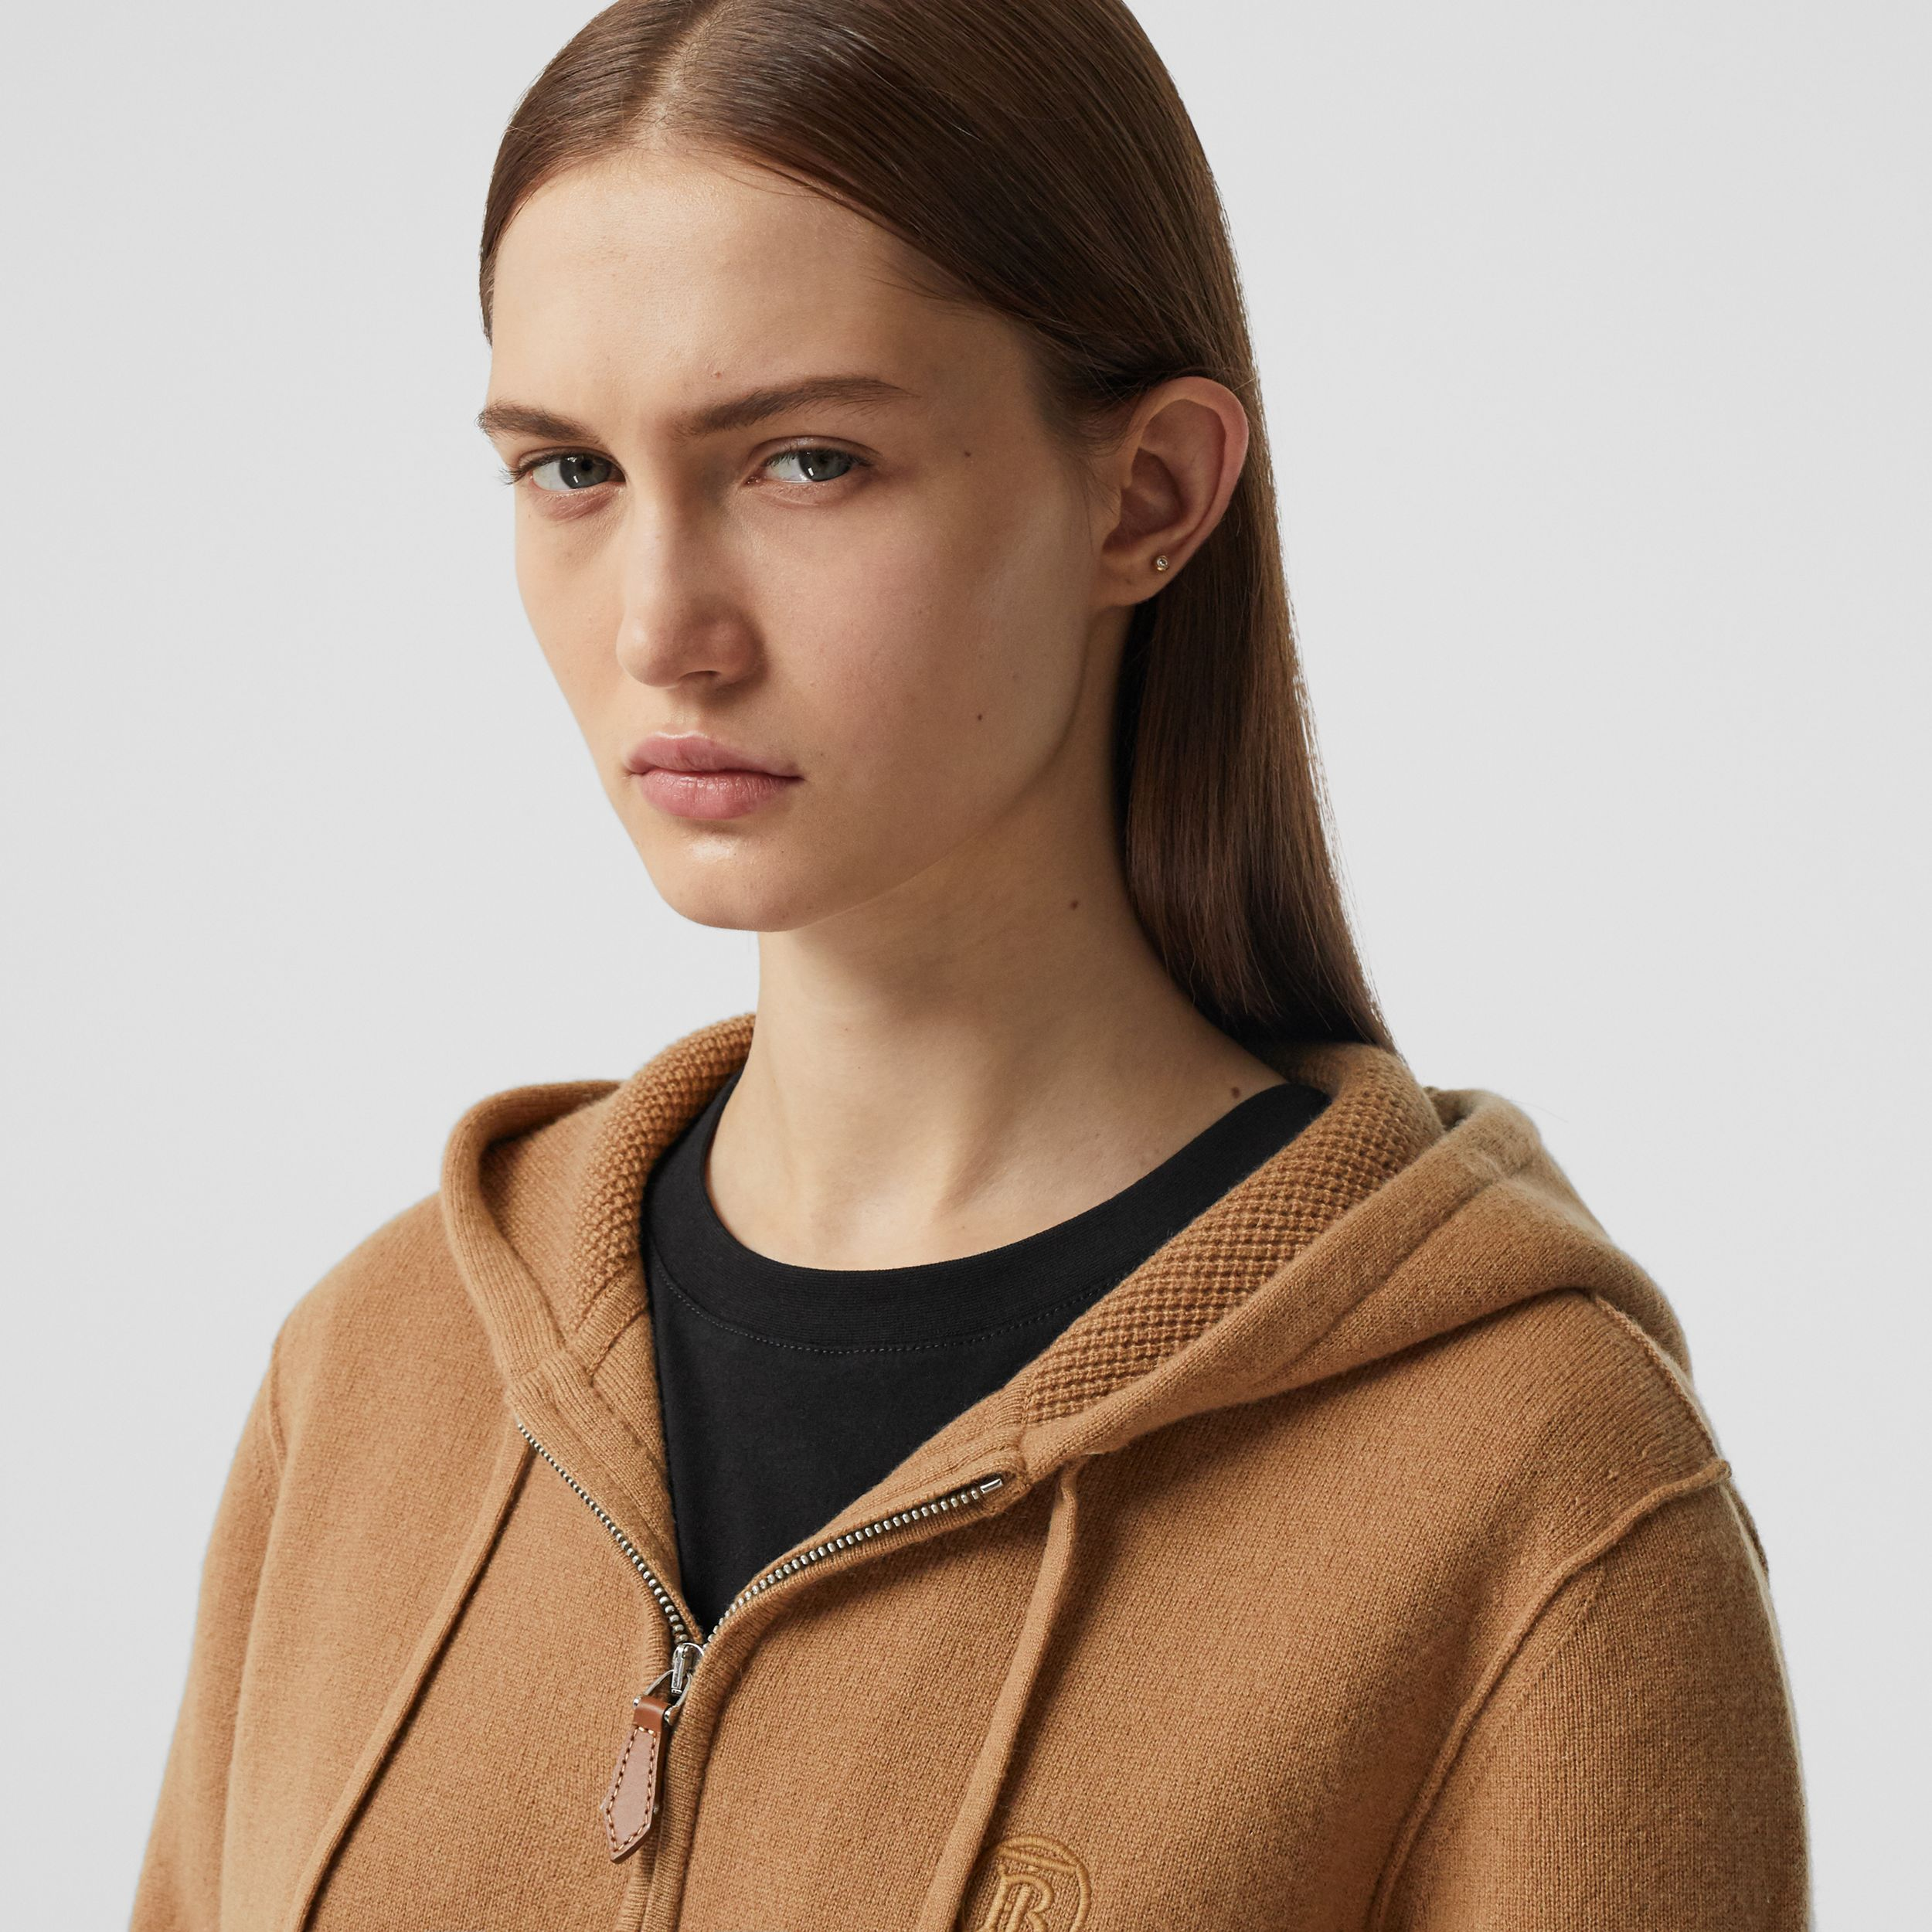 Monogram Motif Cashmere Blend Hooded Top in Camel - Women | Burberry - 2